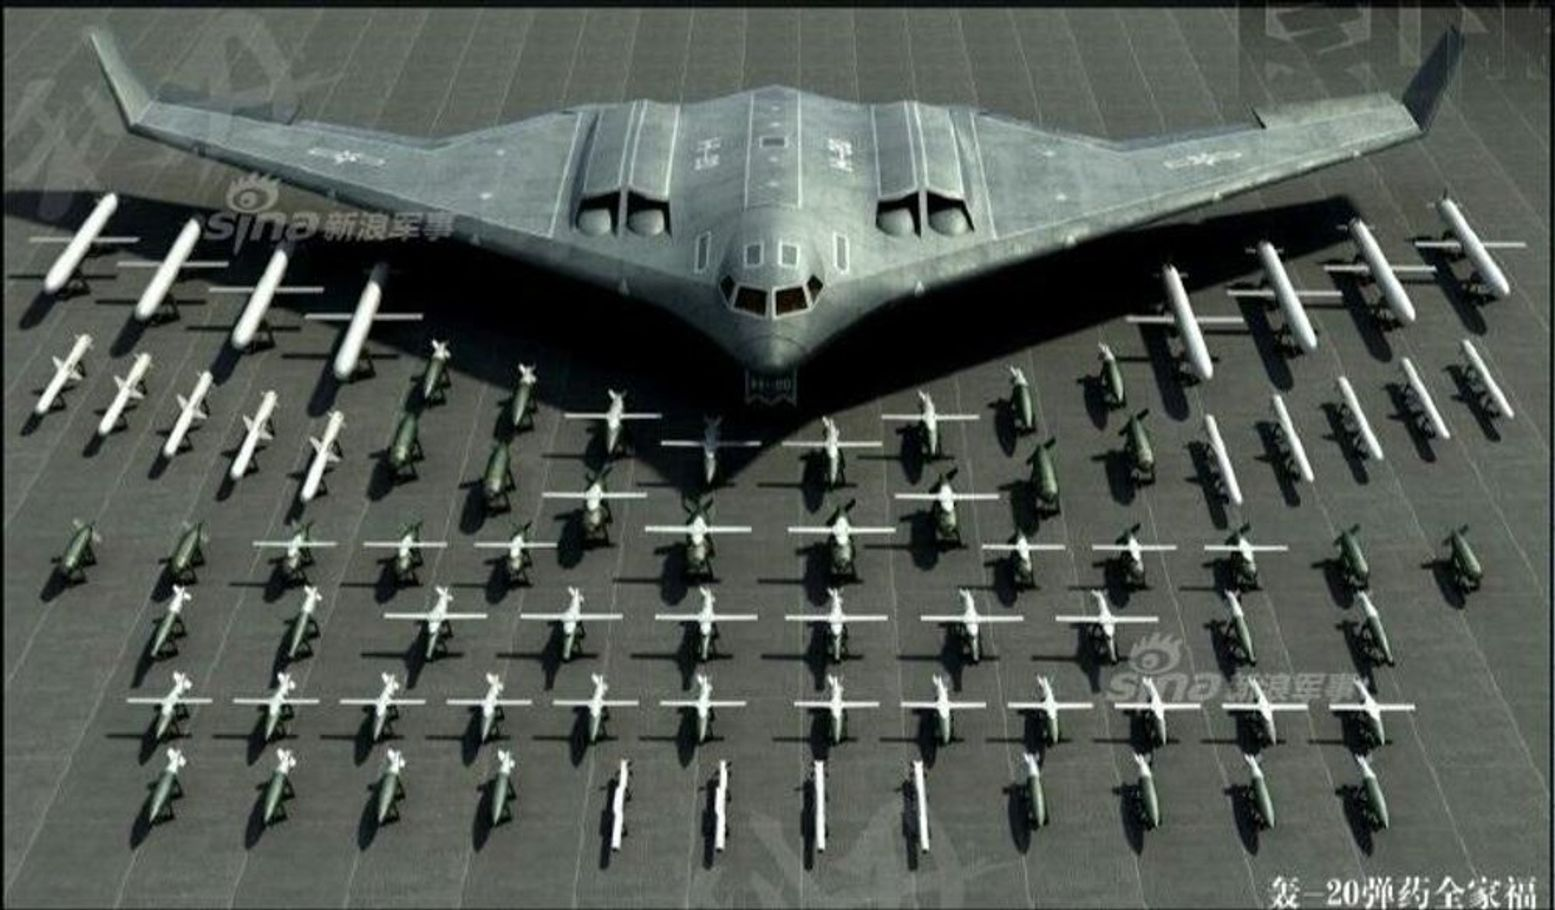 Aircraft Carriers, Stealth Bombers and Killer Tanks: China's Military